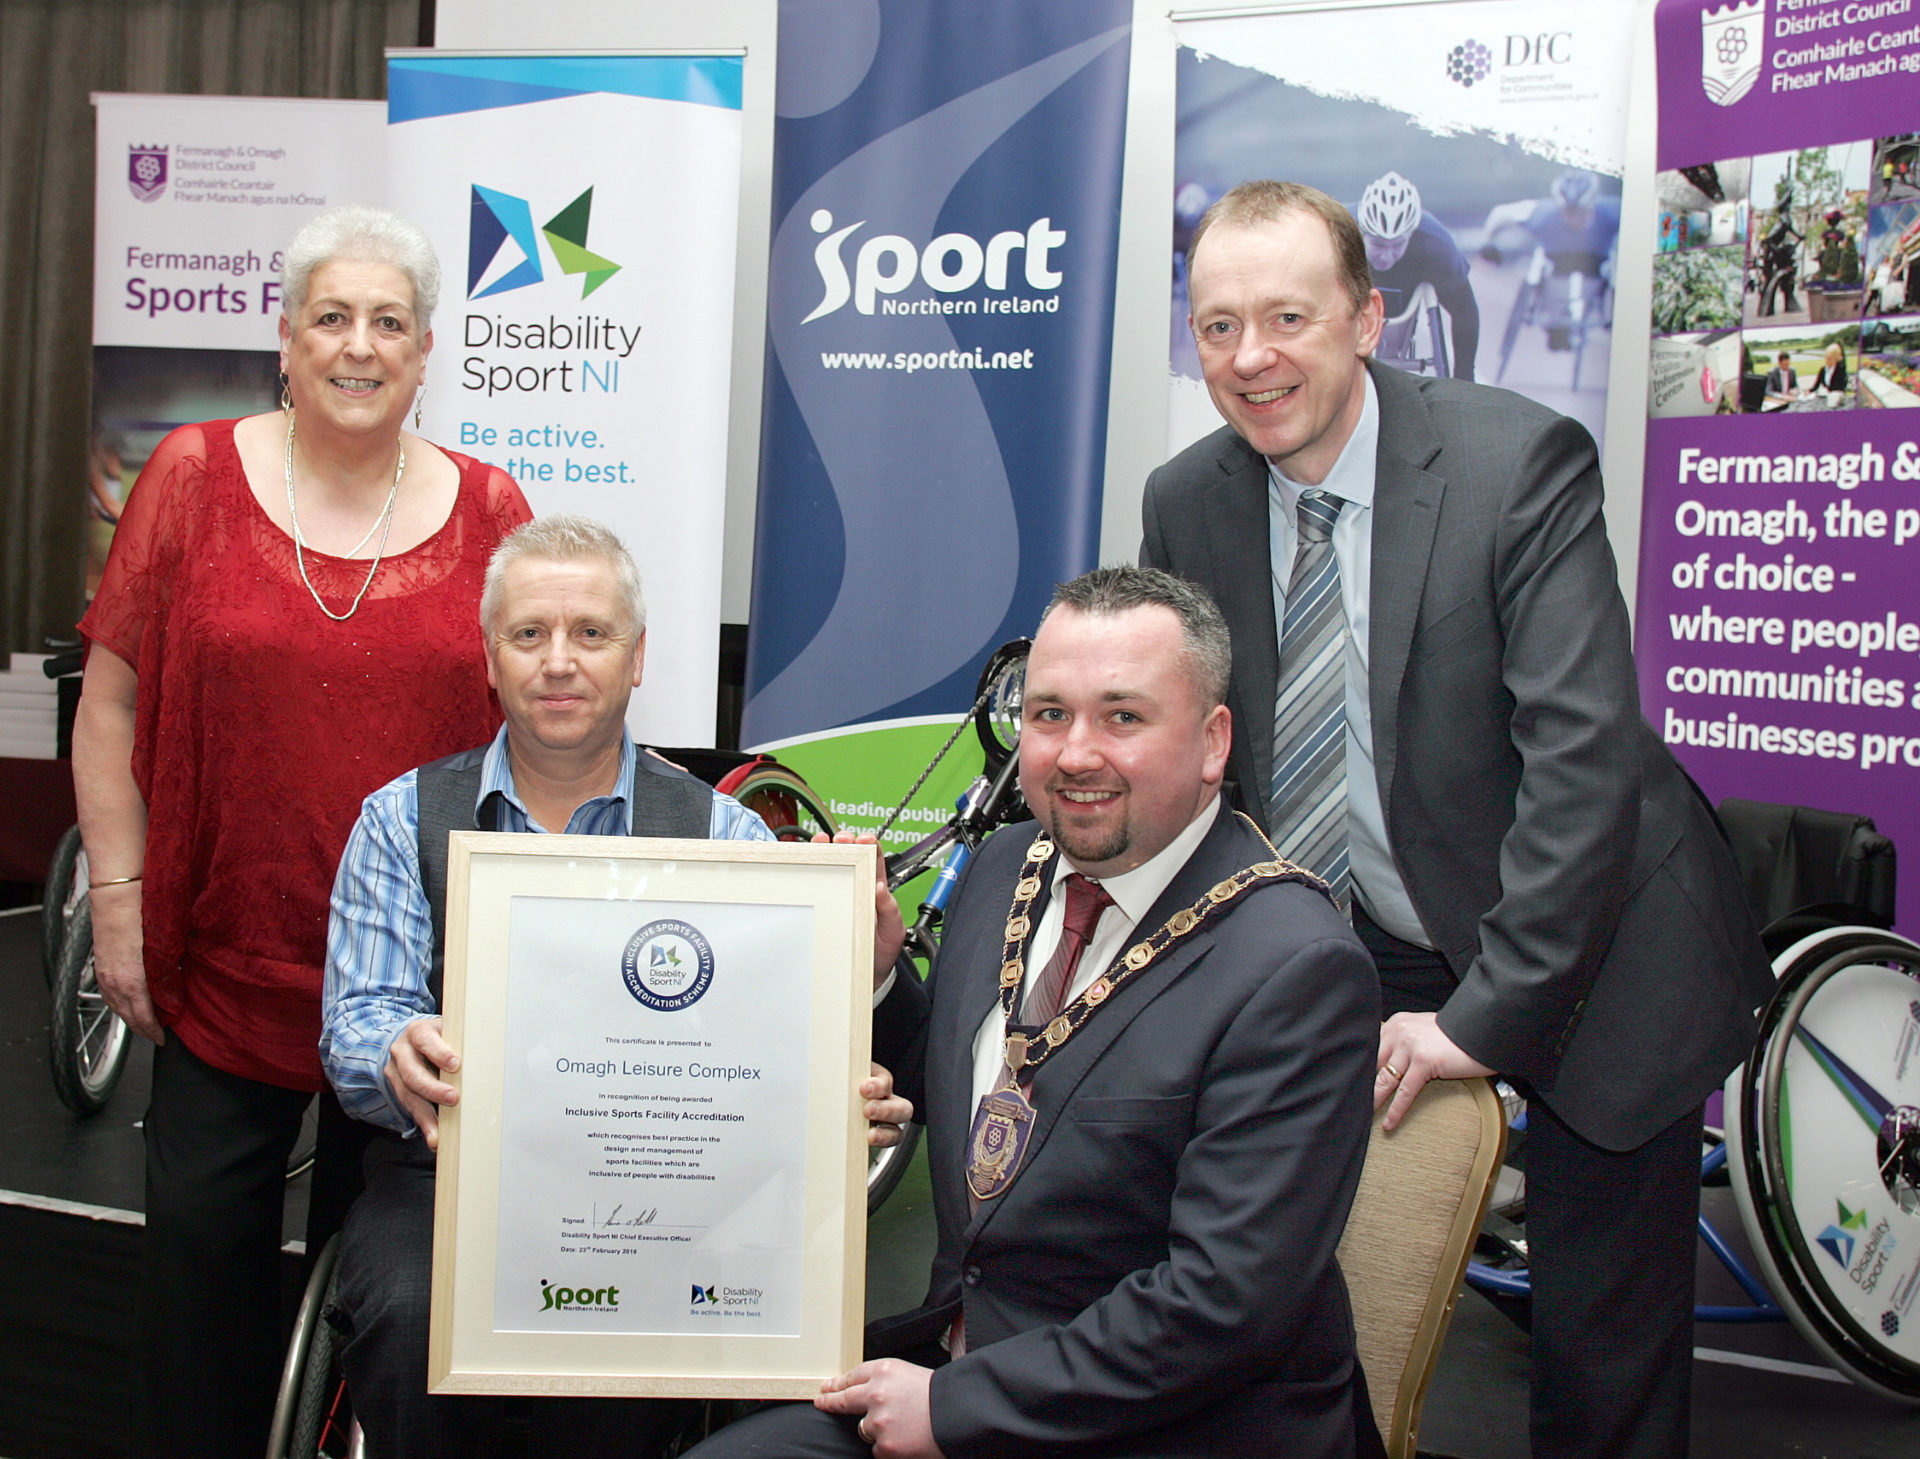 ISF Accrediation 2 – Fermanagh & Omagh District Council